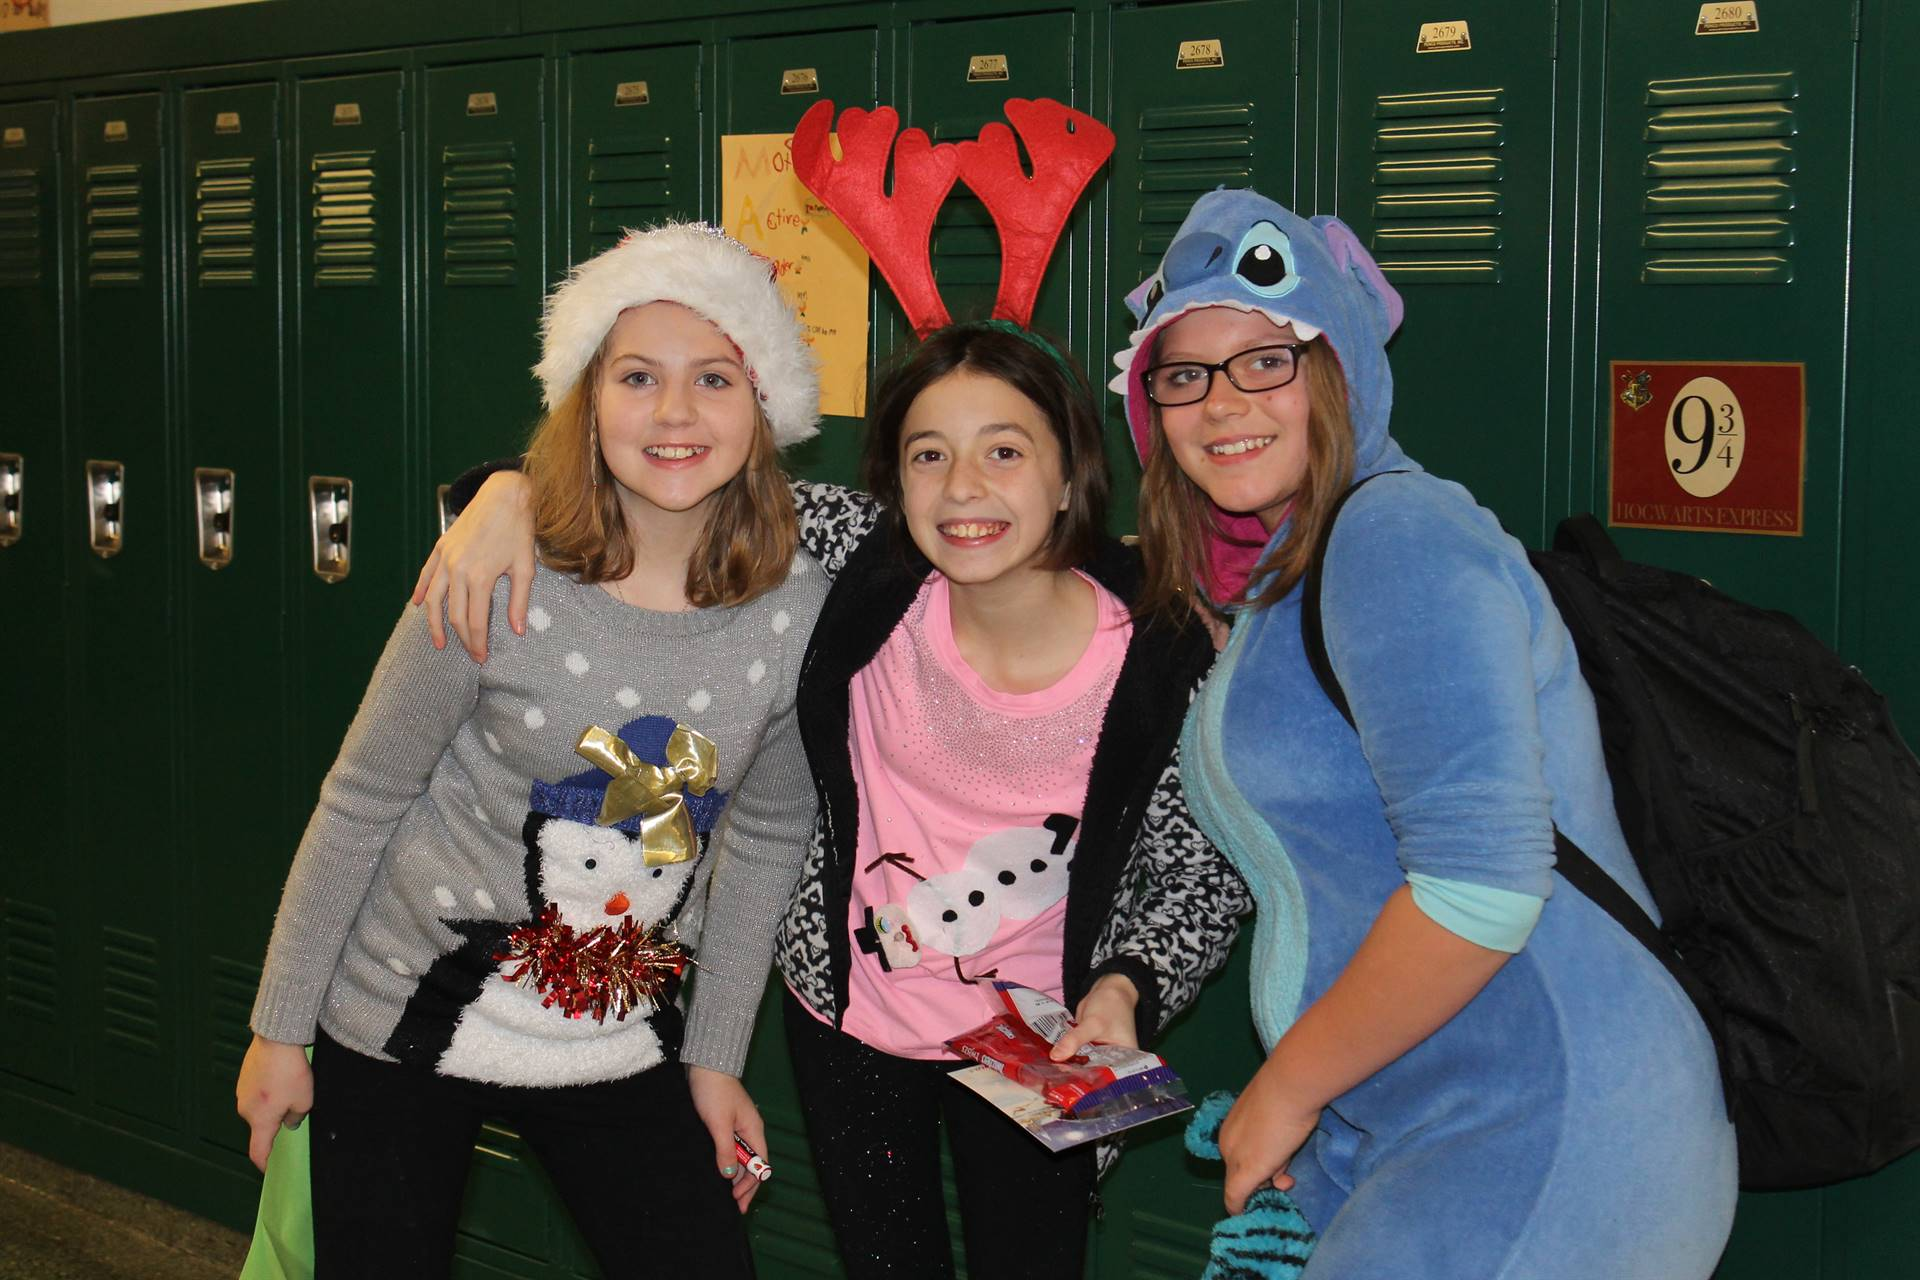 Three girls together in front of the lockers on Spirit Day